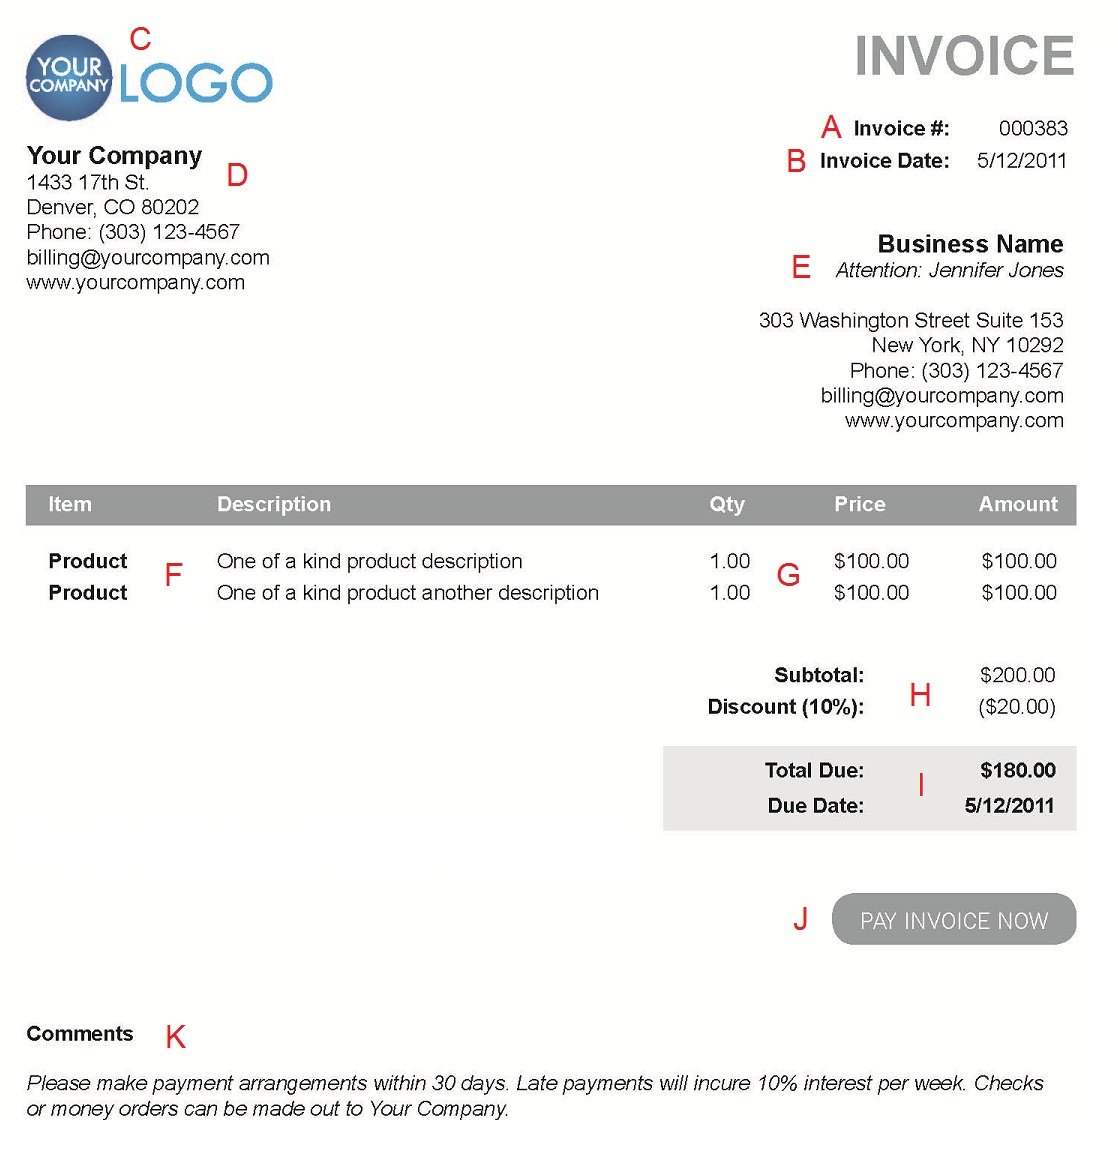 Ultrablogus  Winning The  Different Sections Of An Electronic Payment Invoice With Lovely A  With Awesome Word Template Invoice Also Itemized Invoice In Addition Daycare Invoice And Invoice And Estimate As Well As Construction Invoice Templates Additionally Invoicing System From Paysimplecom With Ultrablogus  Lovely The  Different Sections Of An Electronic Payment Invoice With Awesome A  And Winning Word Template Invoice Also Itemized Invoice In Addition Daycare Invoice From Paysimplecom